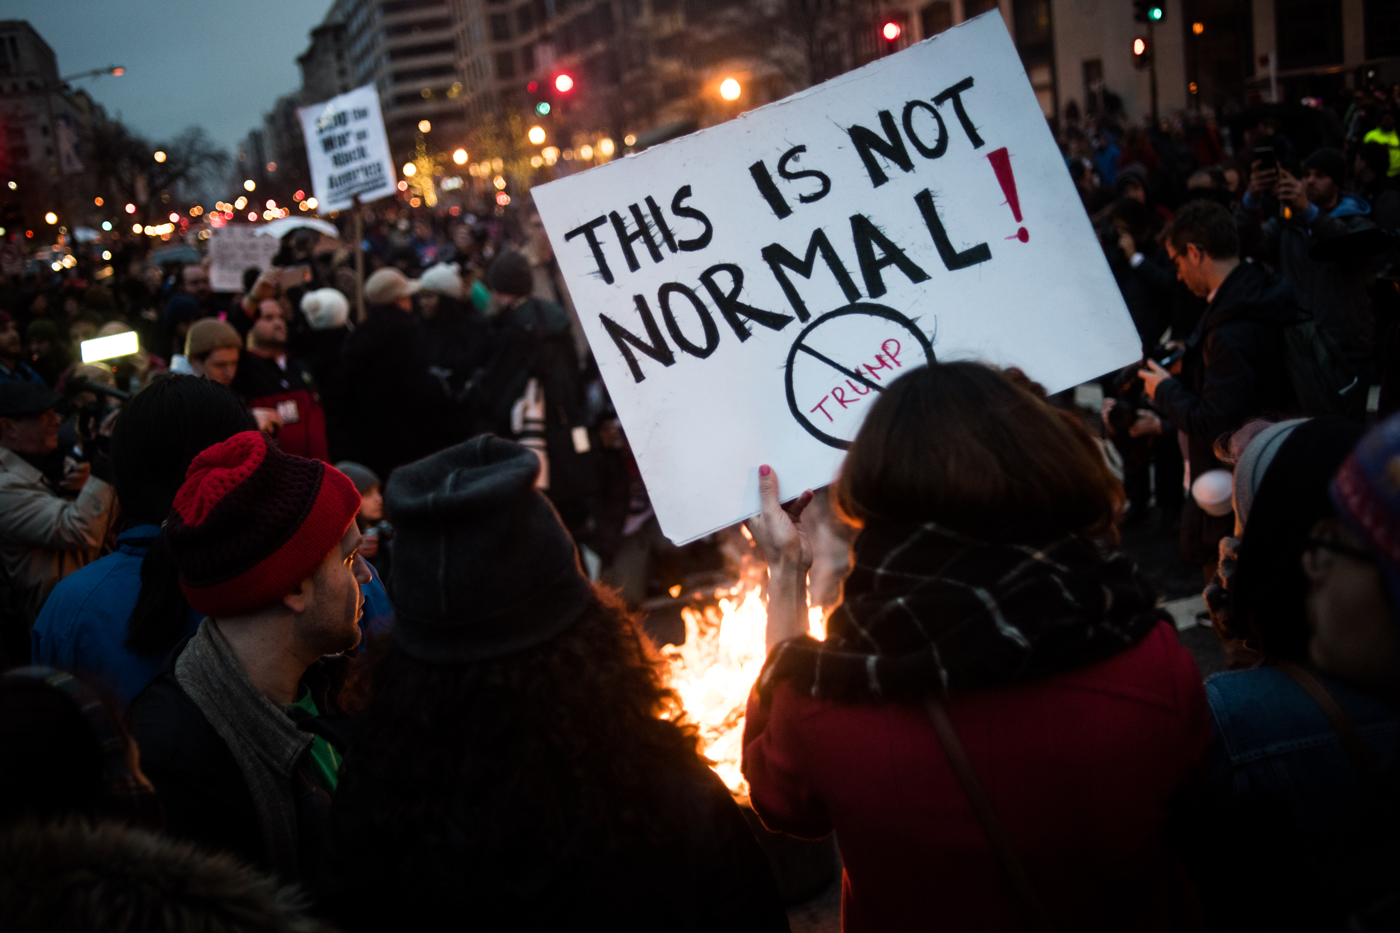 A woman holds a sign near a fire started to protest Donald Trump's inauguration as the 45th President of the United States in Washington, D.C., on January 20, 2017. Credit: Mark Kauzlarich for CNN